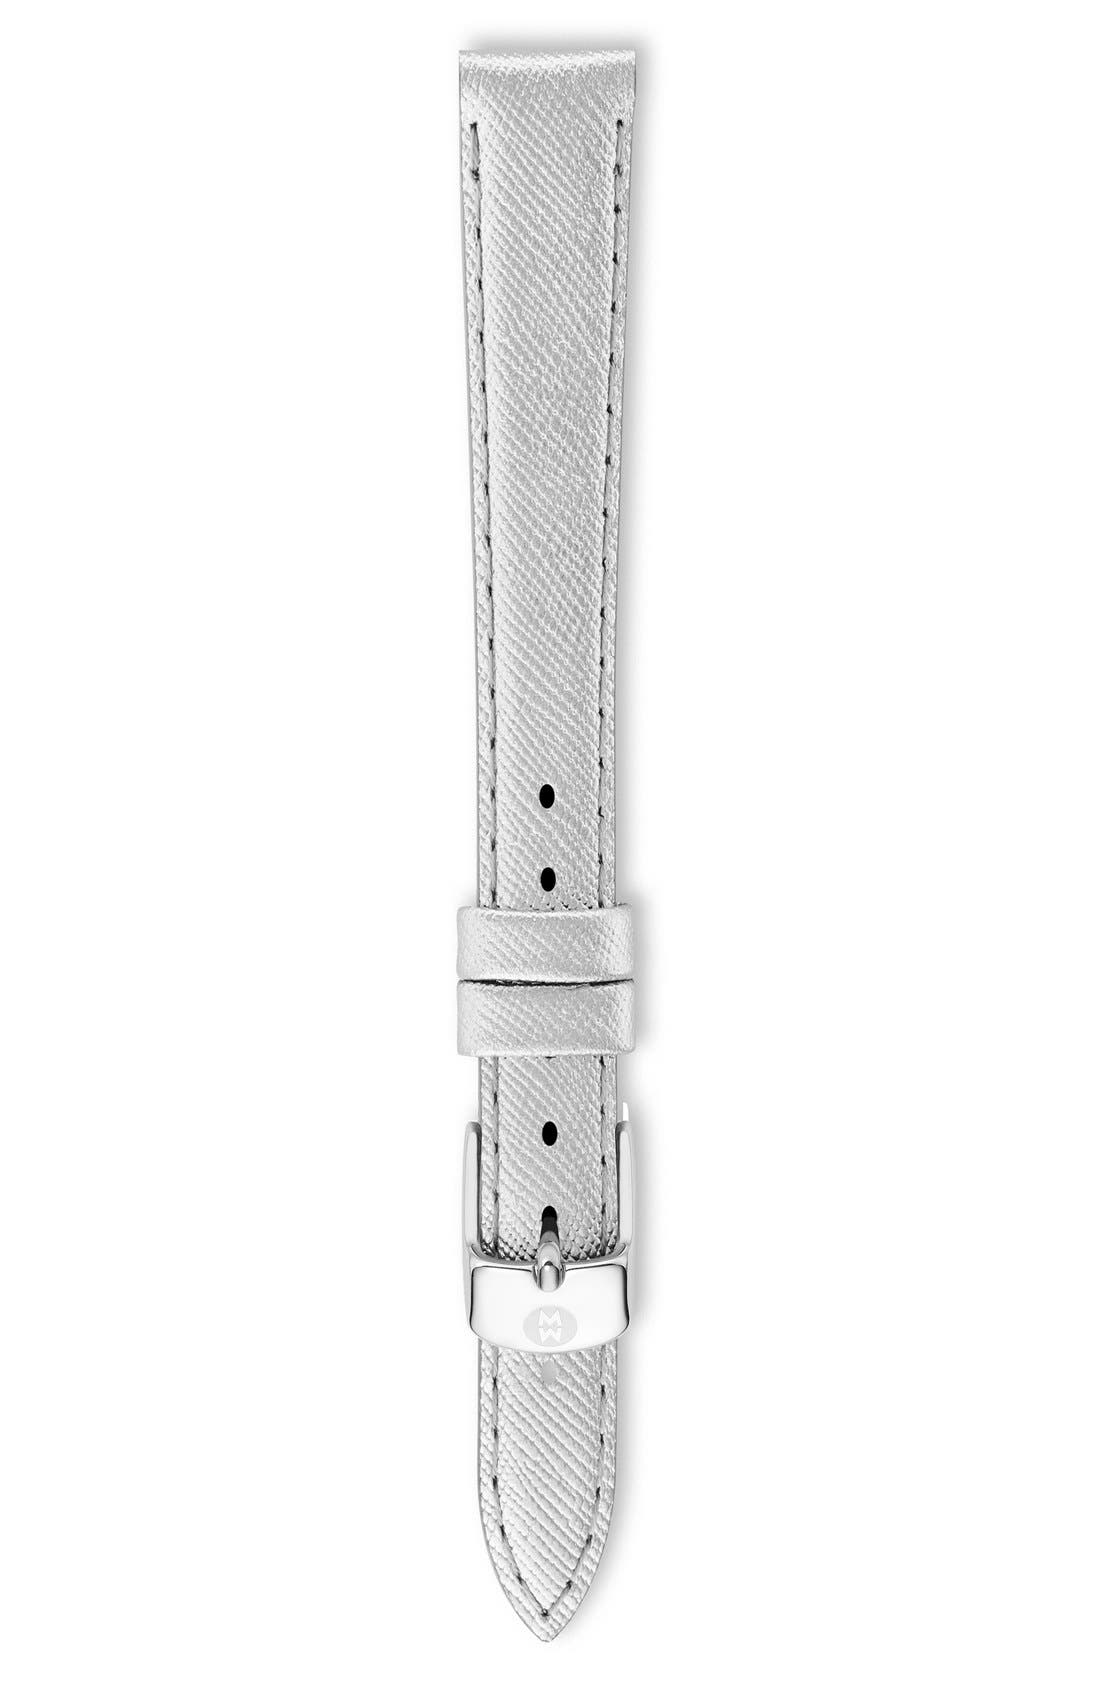 12mm Metallic Leather Watch Strap,                         Main,                         color, 040